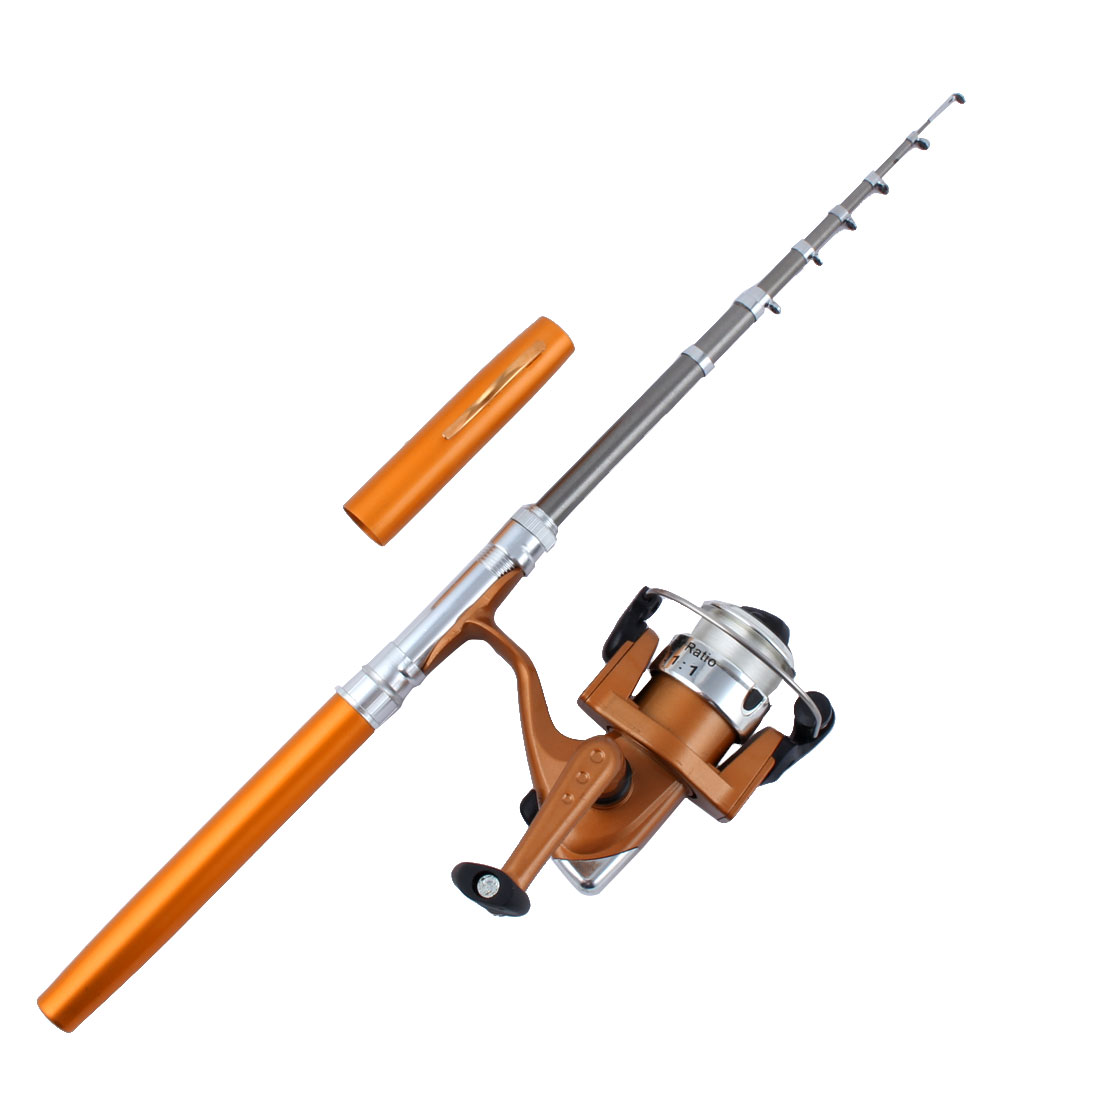 Fisherman Fibre Glass Telescopic Portable Mini Pocket Fishing Rod Spinning Reel Set Gold Tone